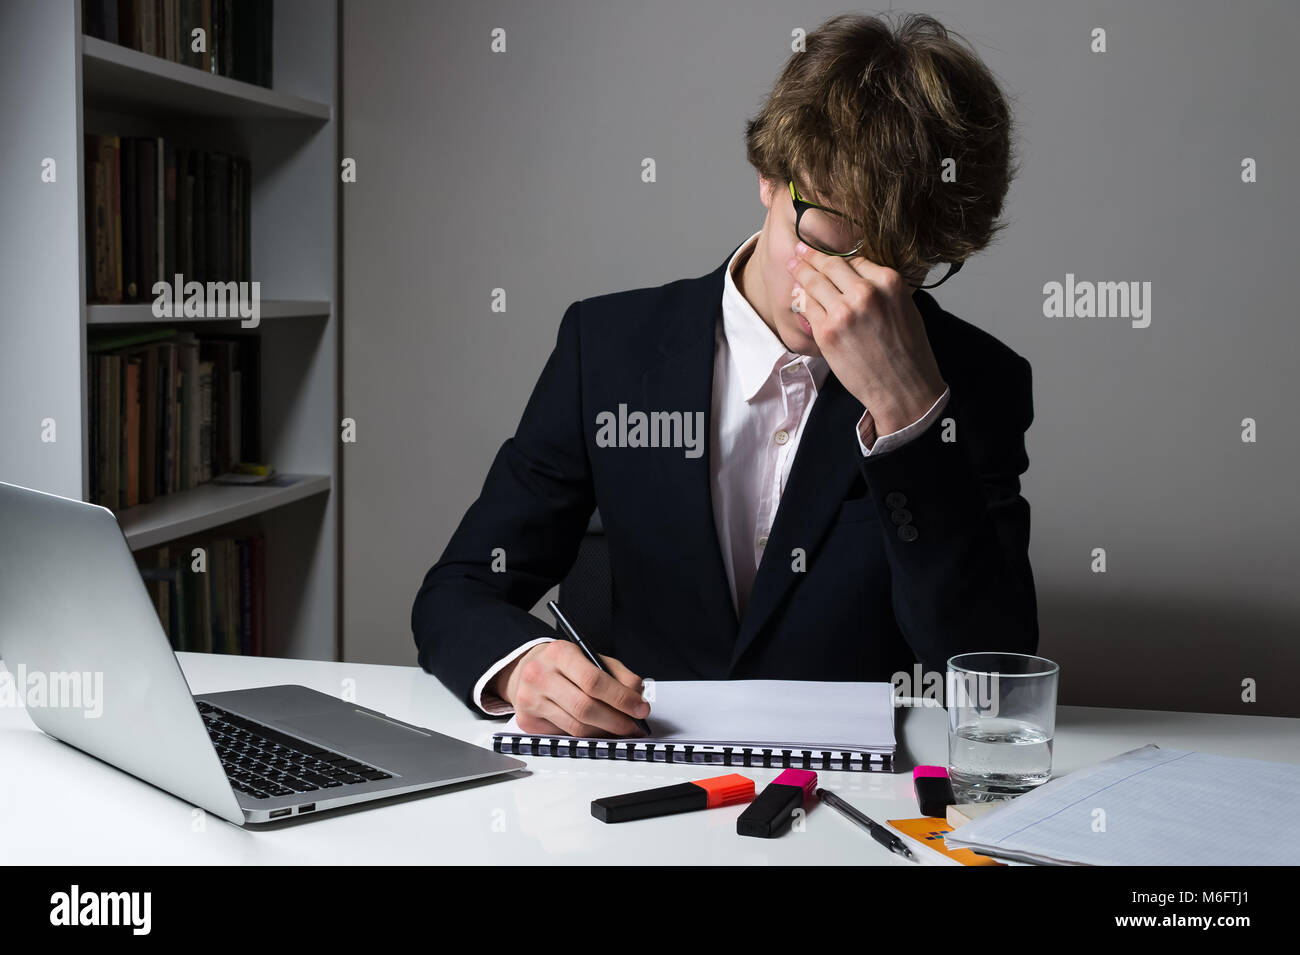 Exhausted employee or student in official suit working late hours at modern desk to meet deadline for assignment - Stock Image